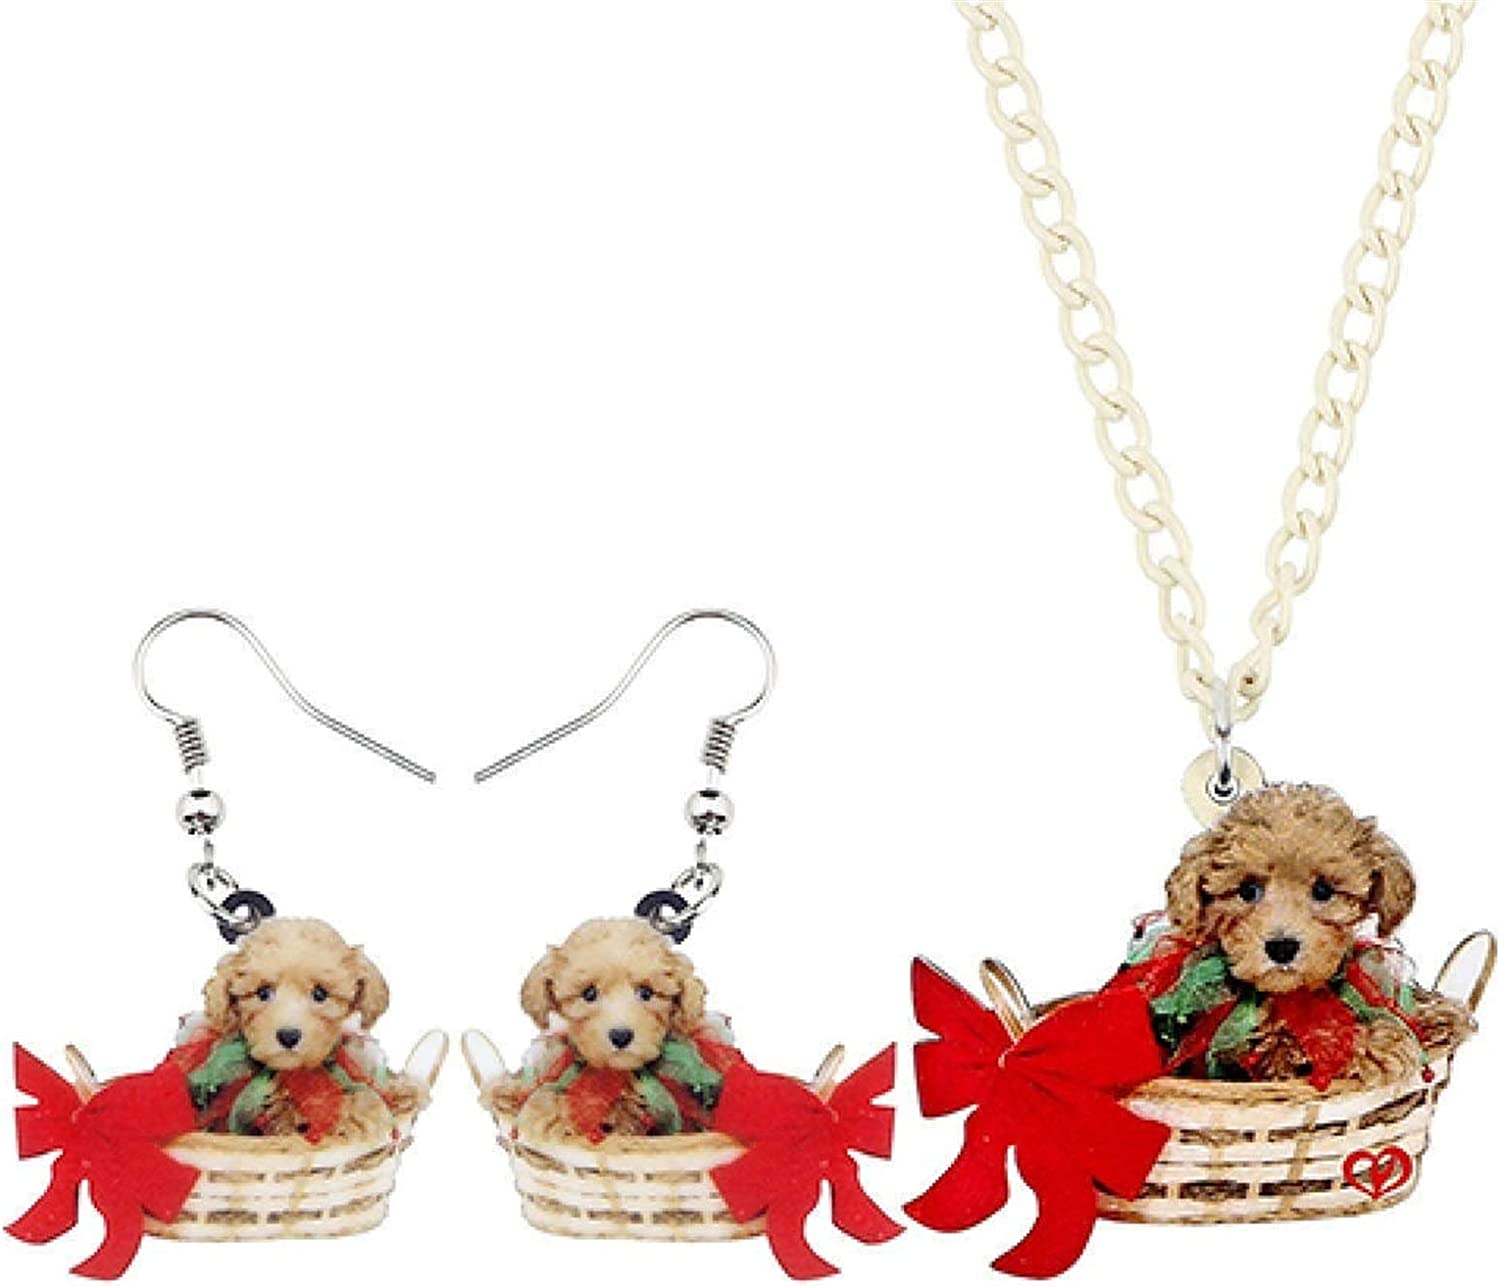 bayue Acrylic Cute Basket Puppy Dog Necklace Earrings Jewelry Set Kids Girls Girls Women Glamour Gifts Holiday Pet Decorations Zhaozb (Color : 1)